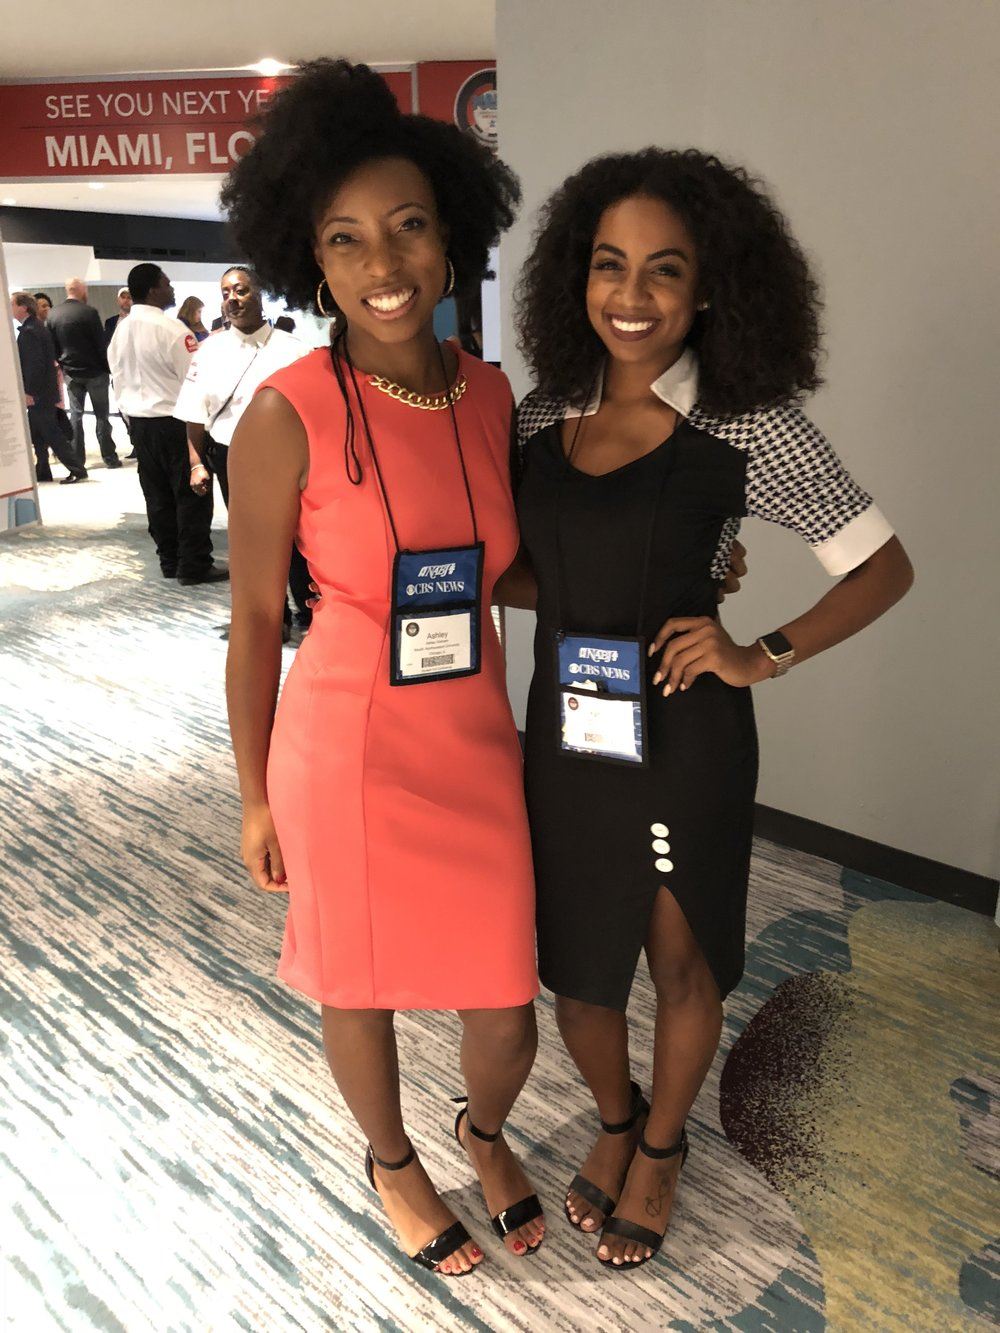 Iyani Hughes, a fellow curly girl and the founder of Curly Girls on Air